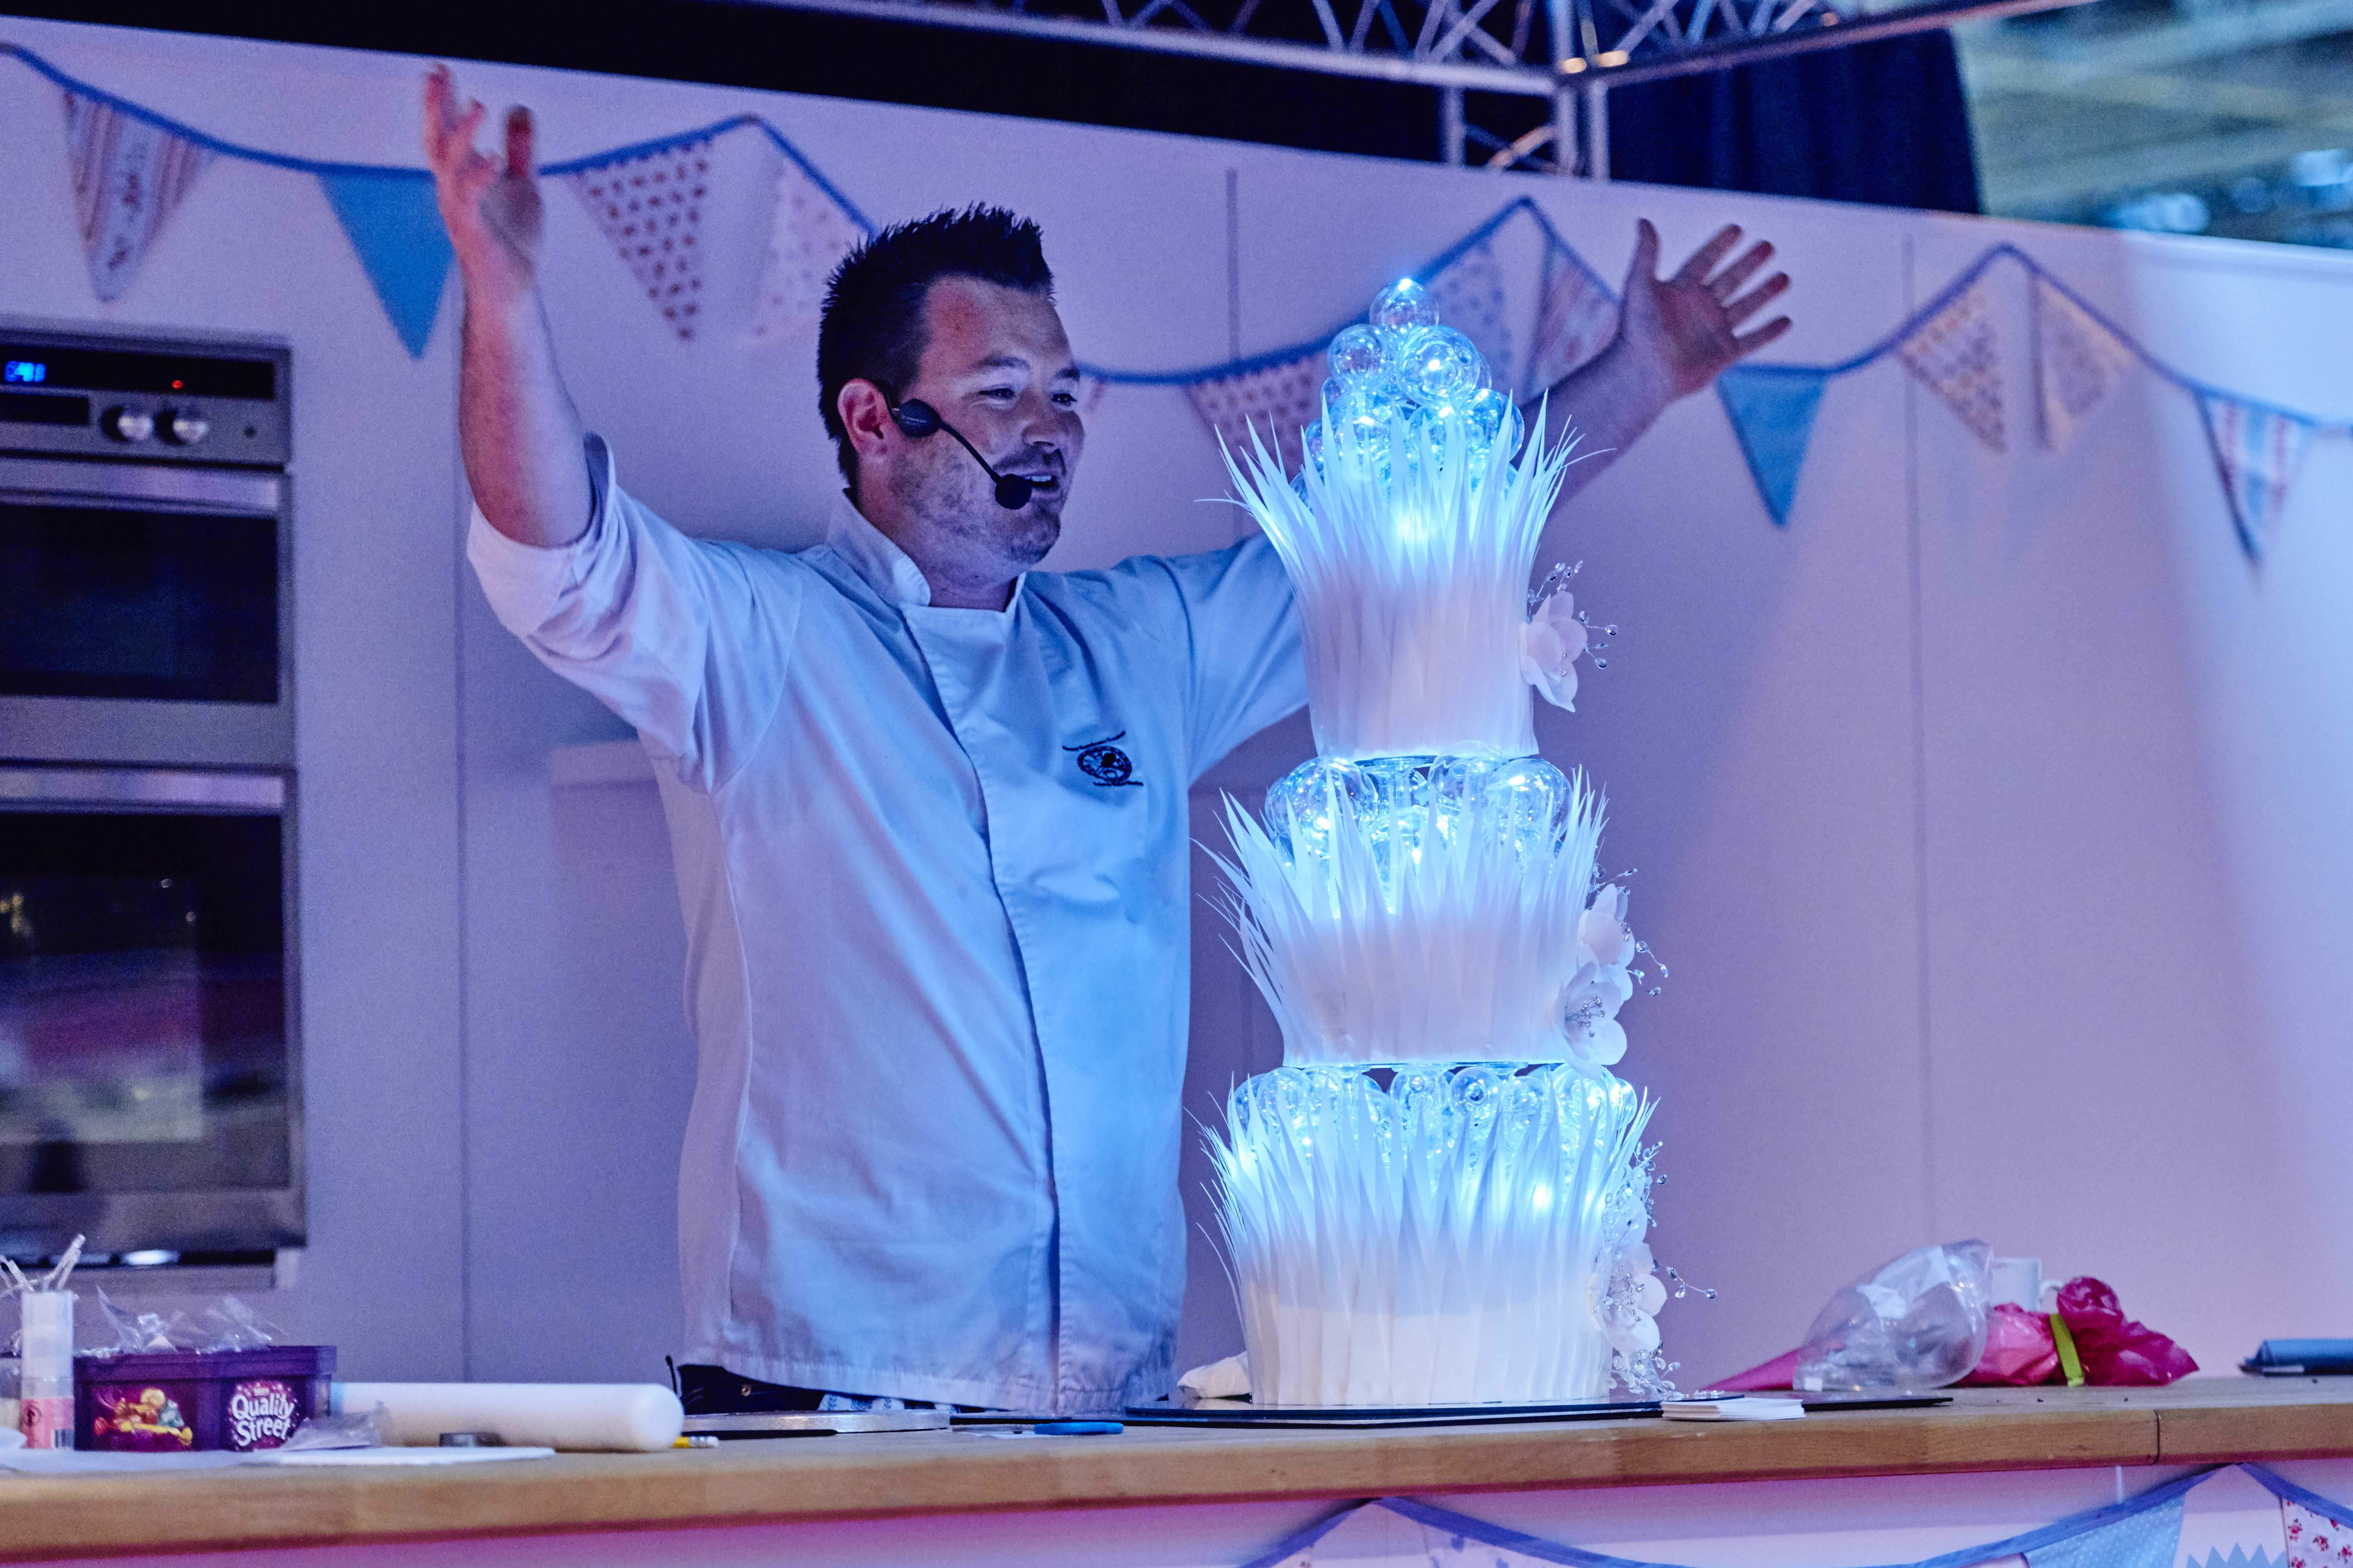 Sweet dreams: The world's biggest and best-loved cake decorating, Cake International, show is back!